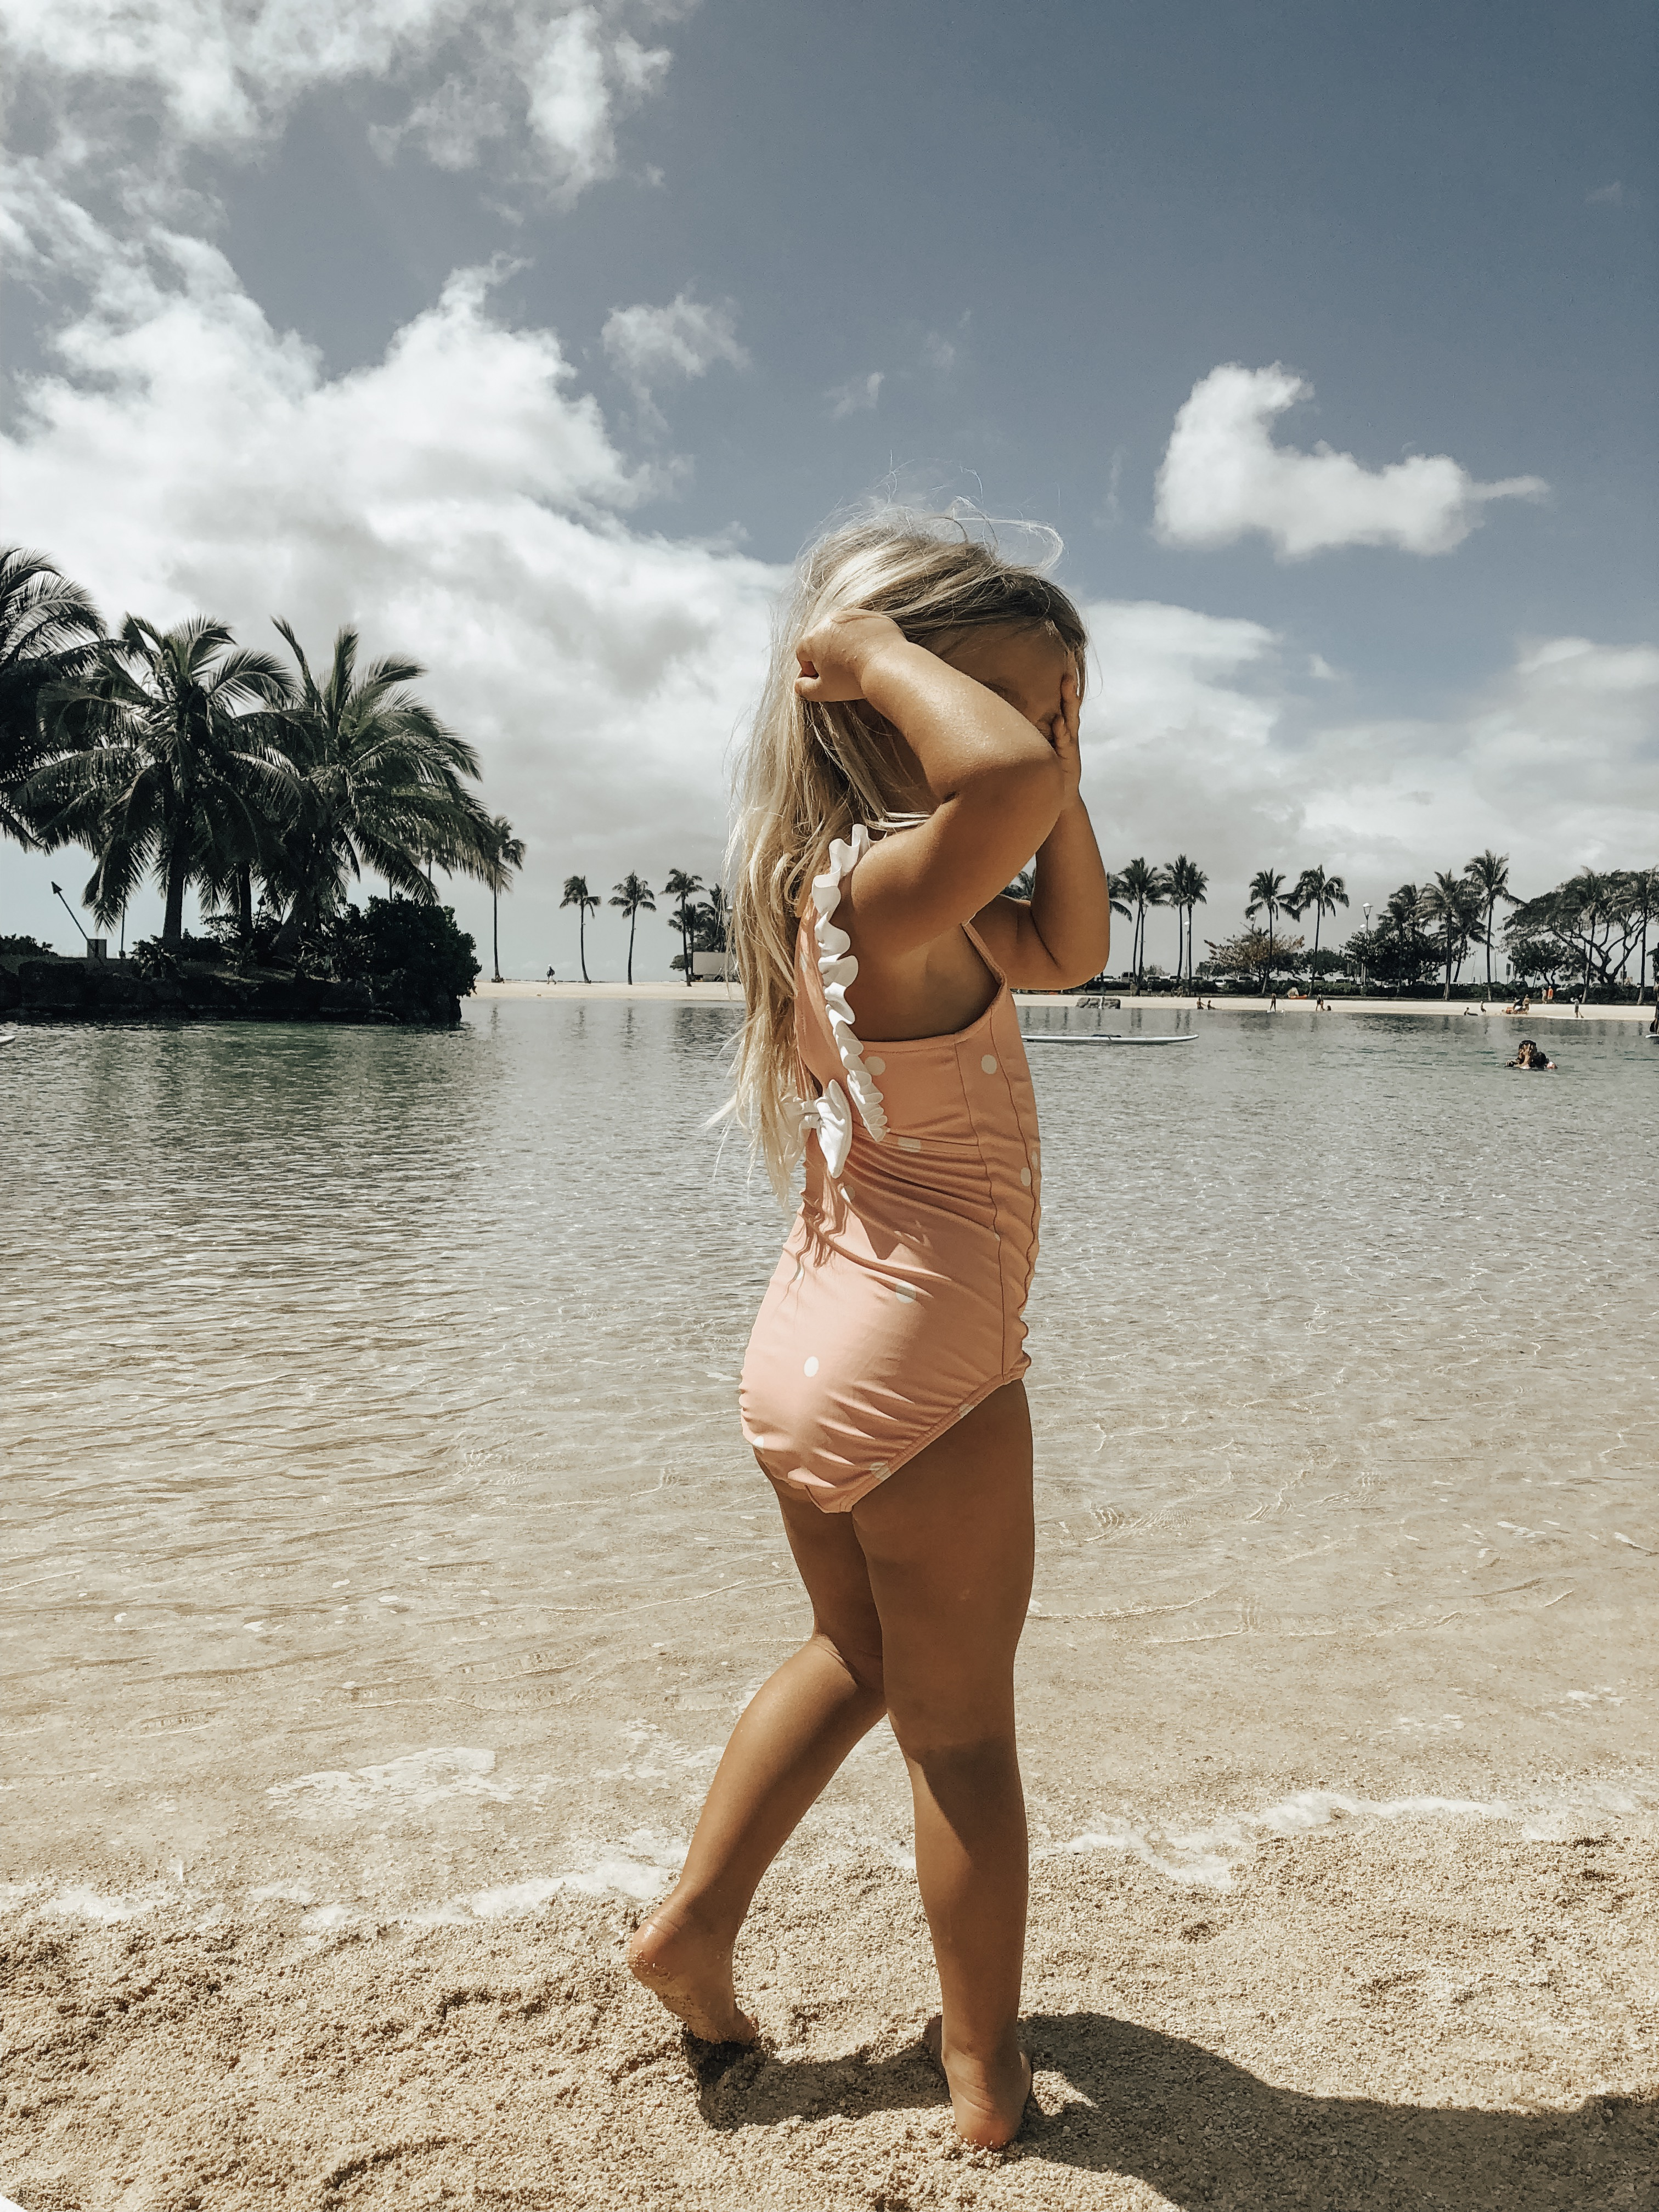 LIVING THE HAWAII LIFE- WHERE WE STAYED, WHAT WE DID AND WHAT I WORE- Jaclyn De Leon Style + Looking for Hawaii vacation travel ideas and tips? Giving all the details of our latest vacation including vacation beach style, family friendly activities, and hotel details.